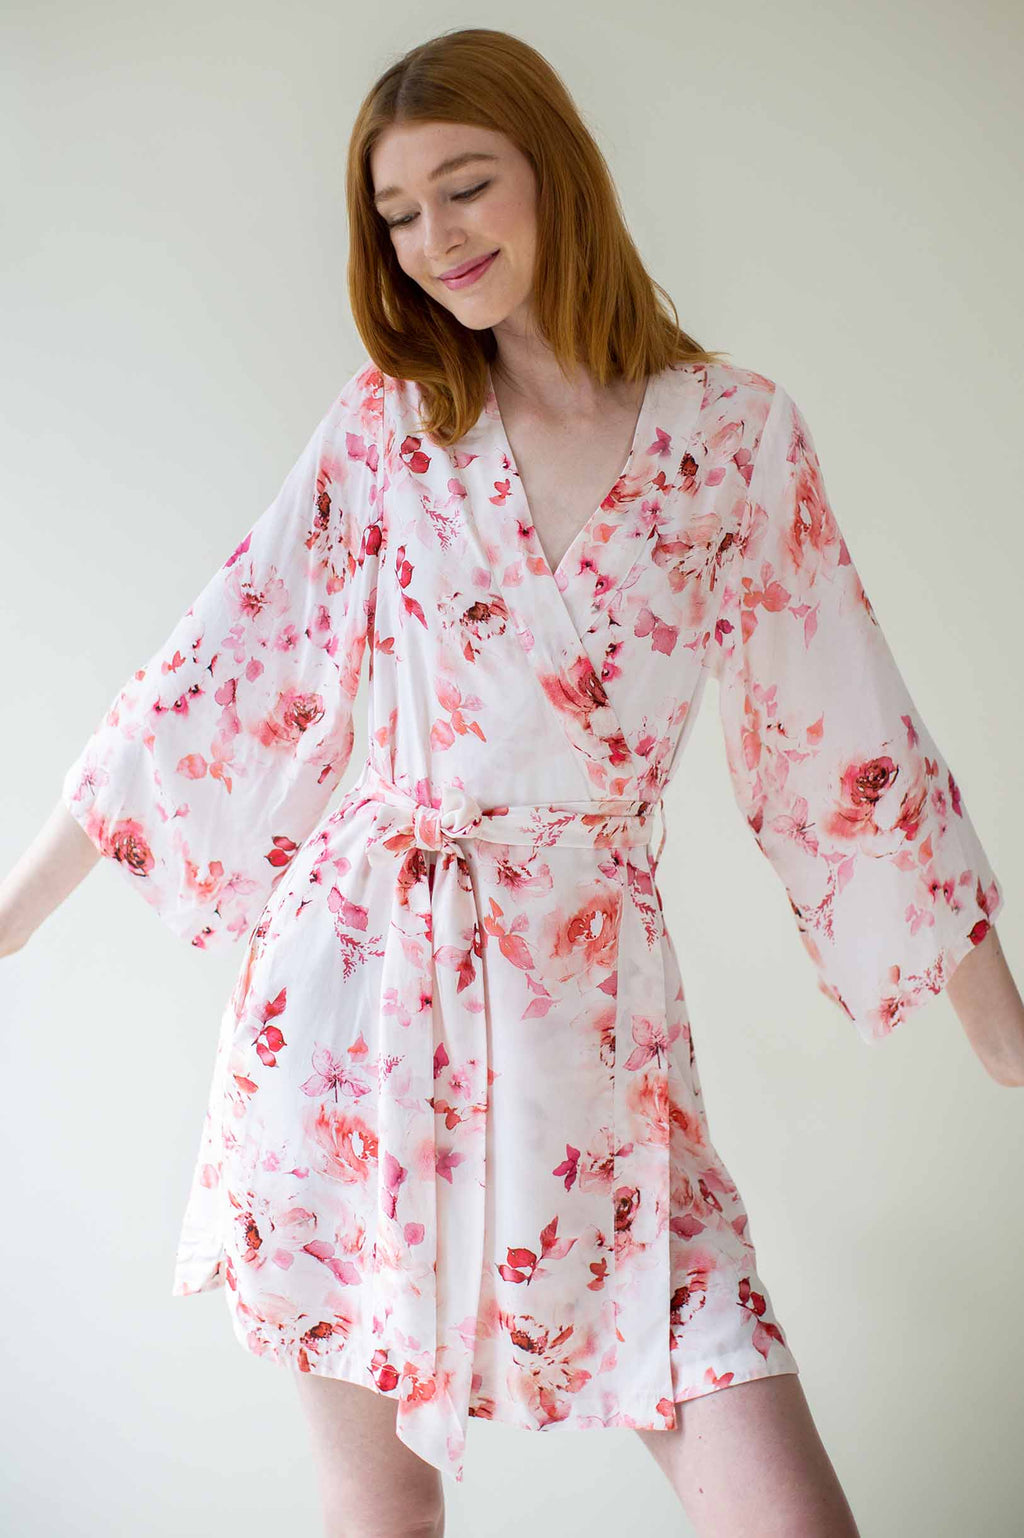 Botanical love Bridesmaids Robes Bridal Robe in Pink floral